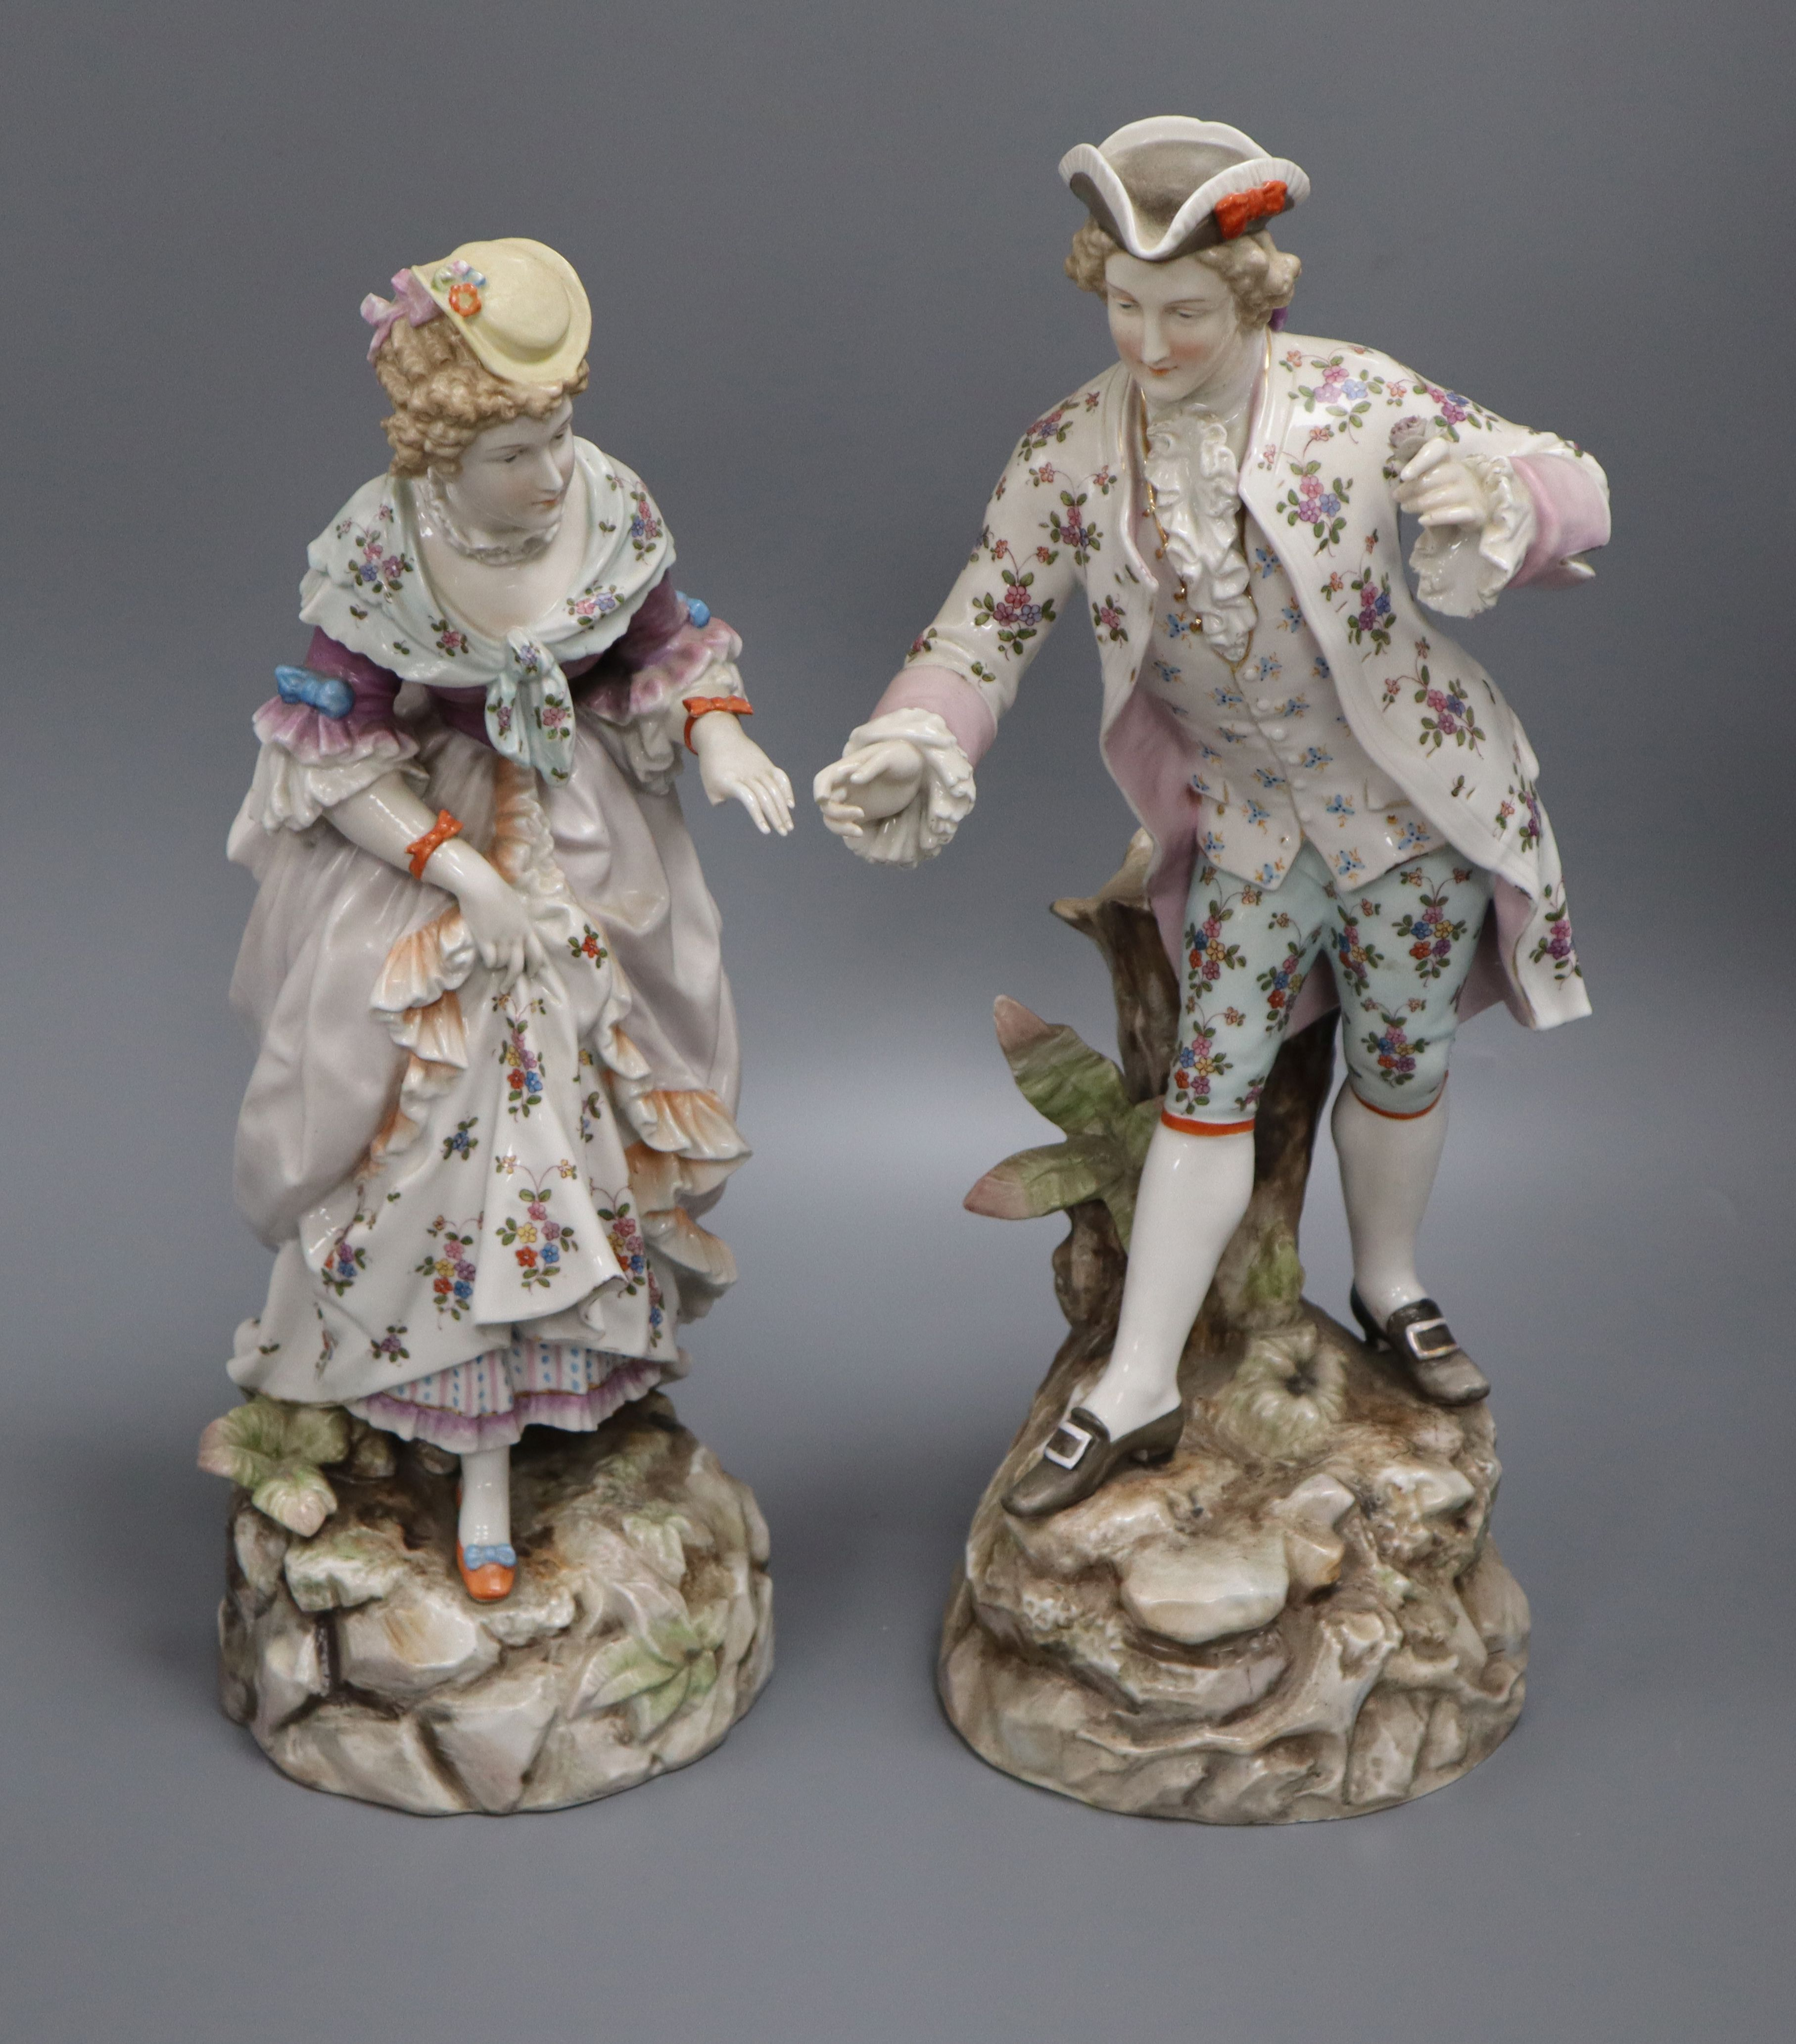 A pair of Rudolstedt Volkstedt porcelain figures height 37cm